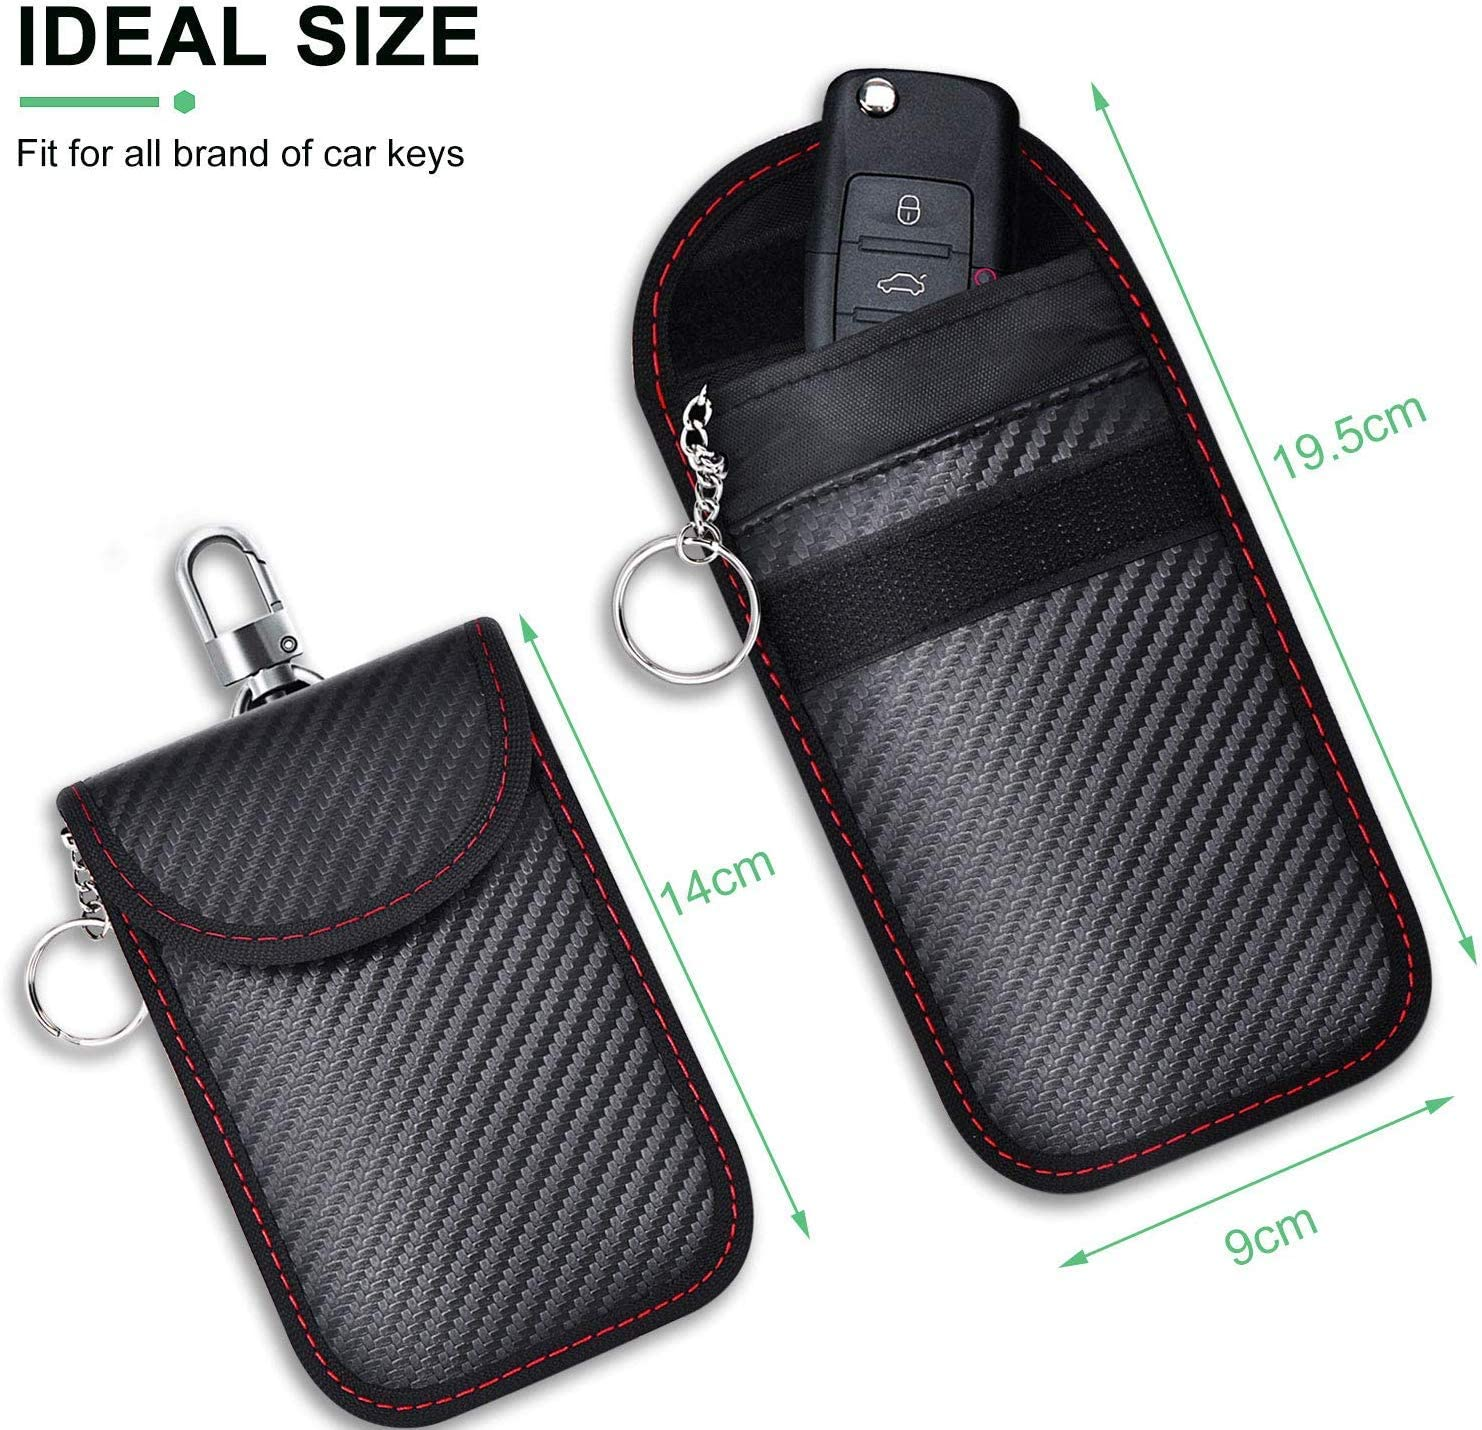 Faraday Bag,RFID Signal Shielding Pocket for Credit Cards,keyless Entry Anti-Theft Carbon Fiber Texture Wallet Case for Privacy Protection 2 Pack Shinyzone Car Key Fob Signal Blocker Pouch